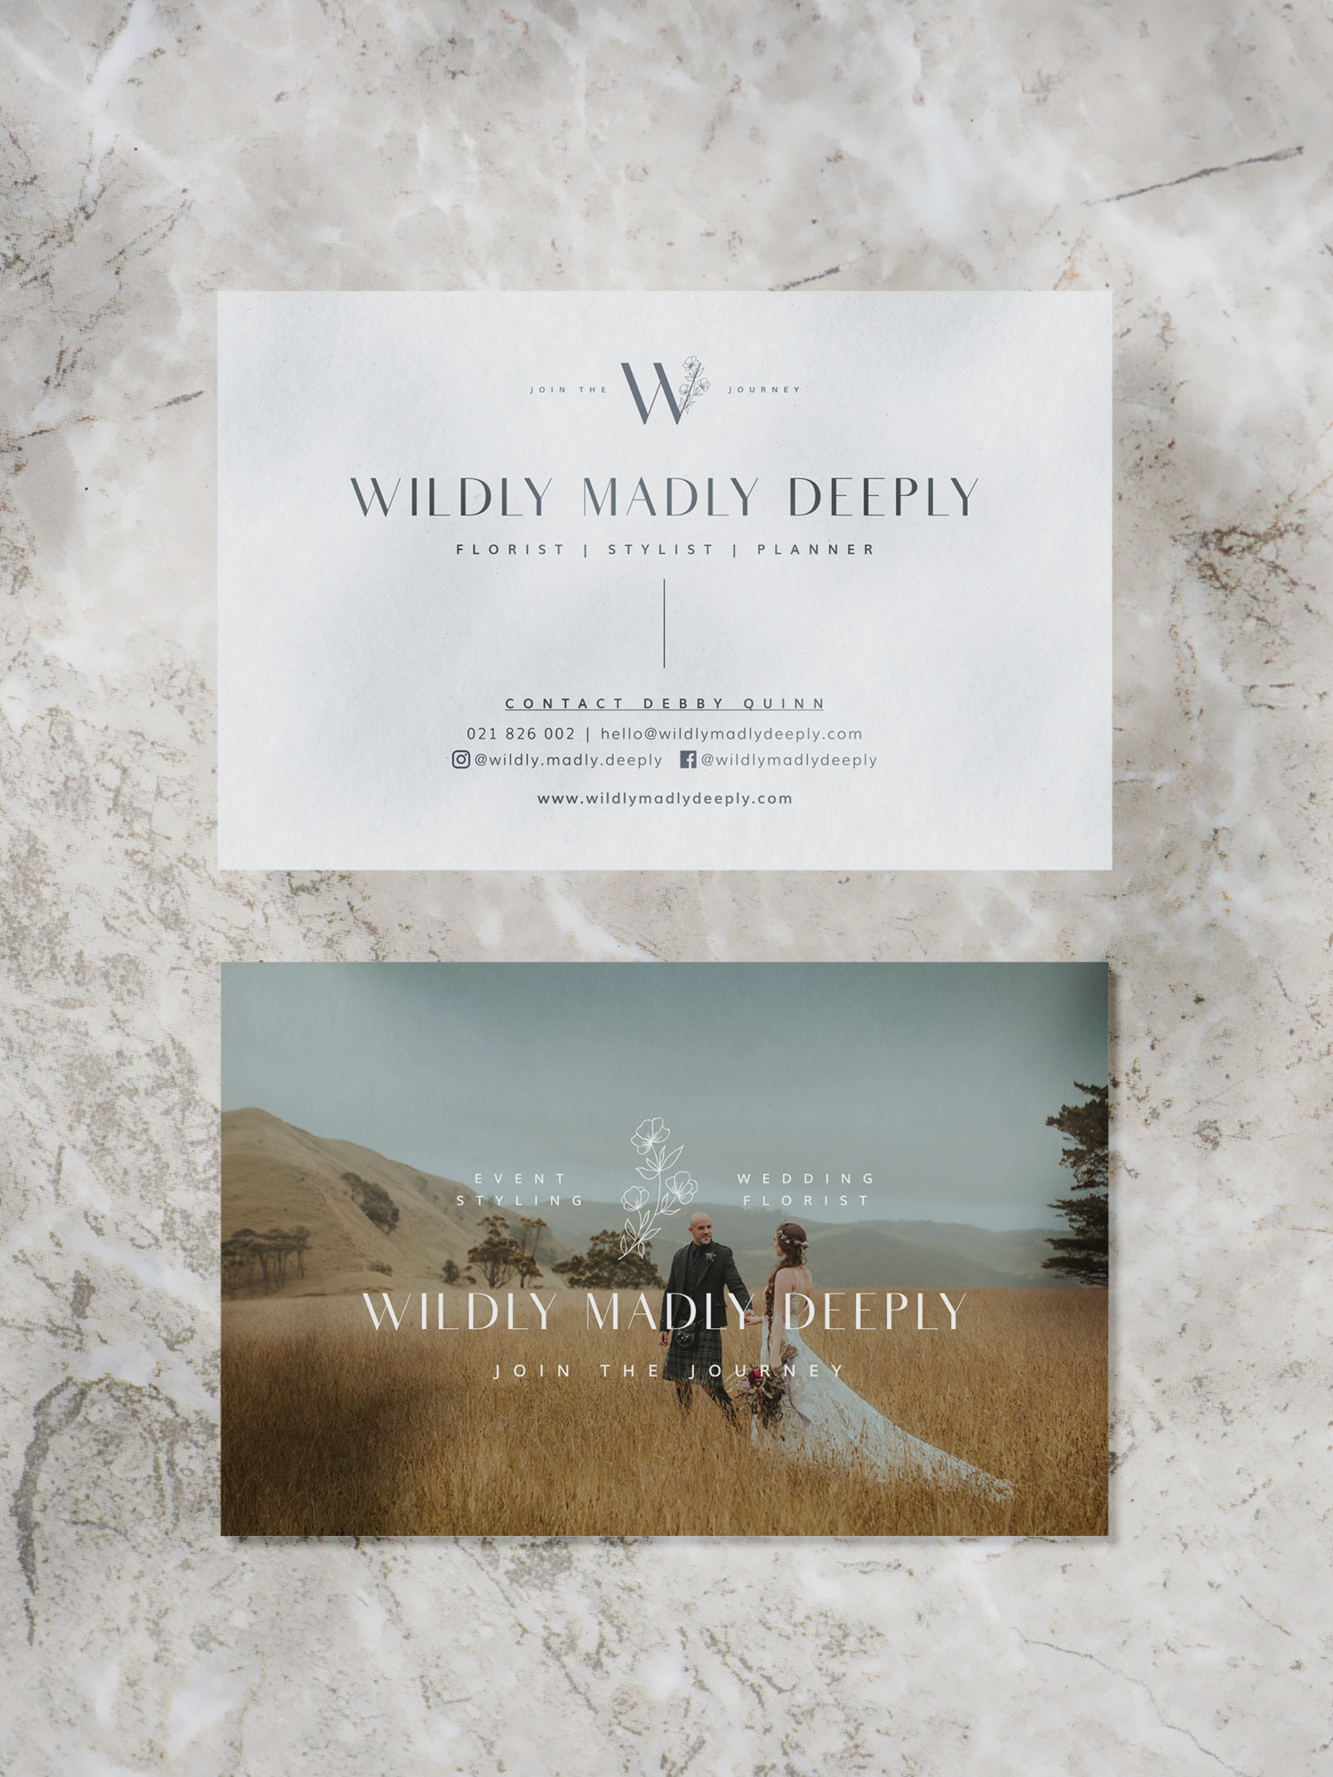 Wildly_Madly_Deeply3.jpg